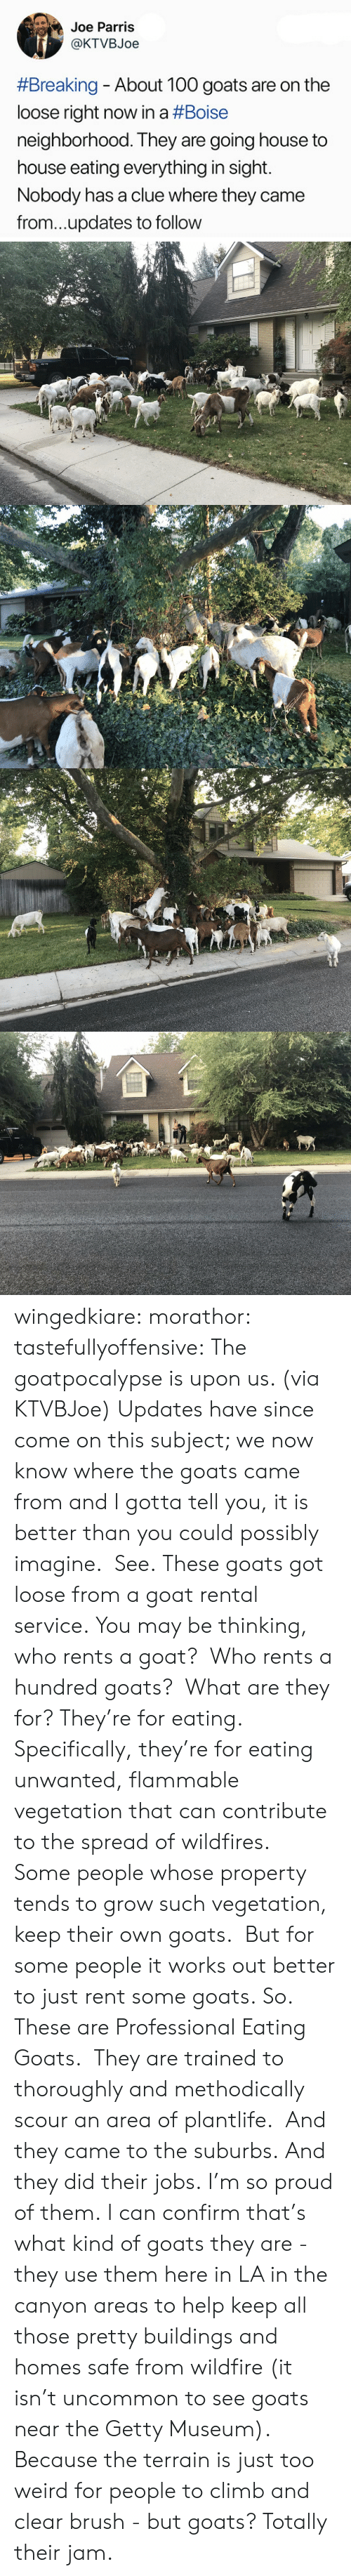 Anaconda, Target, and Tumblr: Joe Parris  @KTVBJoe  #Breaking-About 100 goats are on the  loose right now in a #Boise  neighborhood. They are going house to  house eating everything in sight.  Nobody has a clue where they came  from...updates to follow wingedkiare:  morathor: tastefullyoffensive: The goatpocalypse is upon us. (via KTVBJoe) Updates have since come on this subject; we now know where the goats came from and I gotta tell you, it is better than you could possibly imagine. See. These goats got loose from a goat rental service. You may be thinking, who rents a goat? Who rents a hundred goats? What are they for? They're for eating. Specifically, they're for eating unwanted, flammable vegetation that can contribute to the spread of wildfires. Some people whose property tends to grow such vegetation, keep their own goats. But for some people it works out better to just rent some goats. So. These are Professional Eating Goats. They are trained to thoroughly and methodically scour an area of plantlife. And they came to the suburbs. And they did their jobs. I'm so proud of them.  I can confirm that's what kind of goats they are - they use them here in LA in the canyon areas to help keep all those pretty buildings and homes safe from wildfire (it isn't uncommon to see goats near the Getty Museum).  Because the terrain is just too weird for people to climb and clear brush - but goats?  Totally their jam.